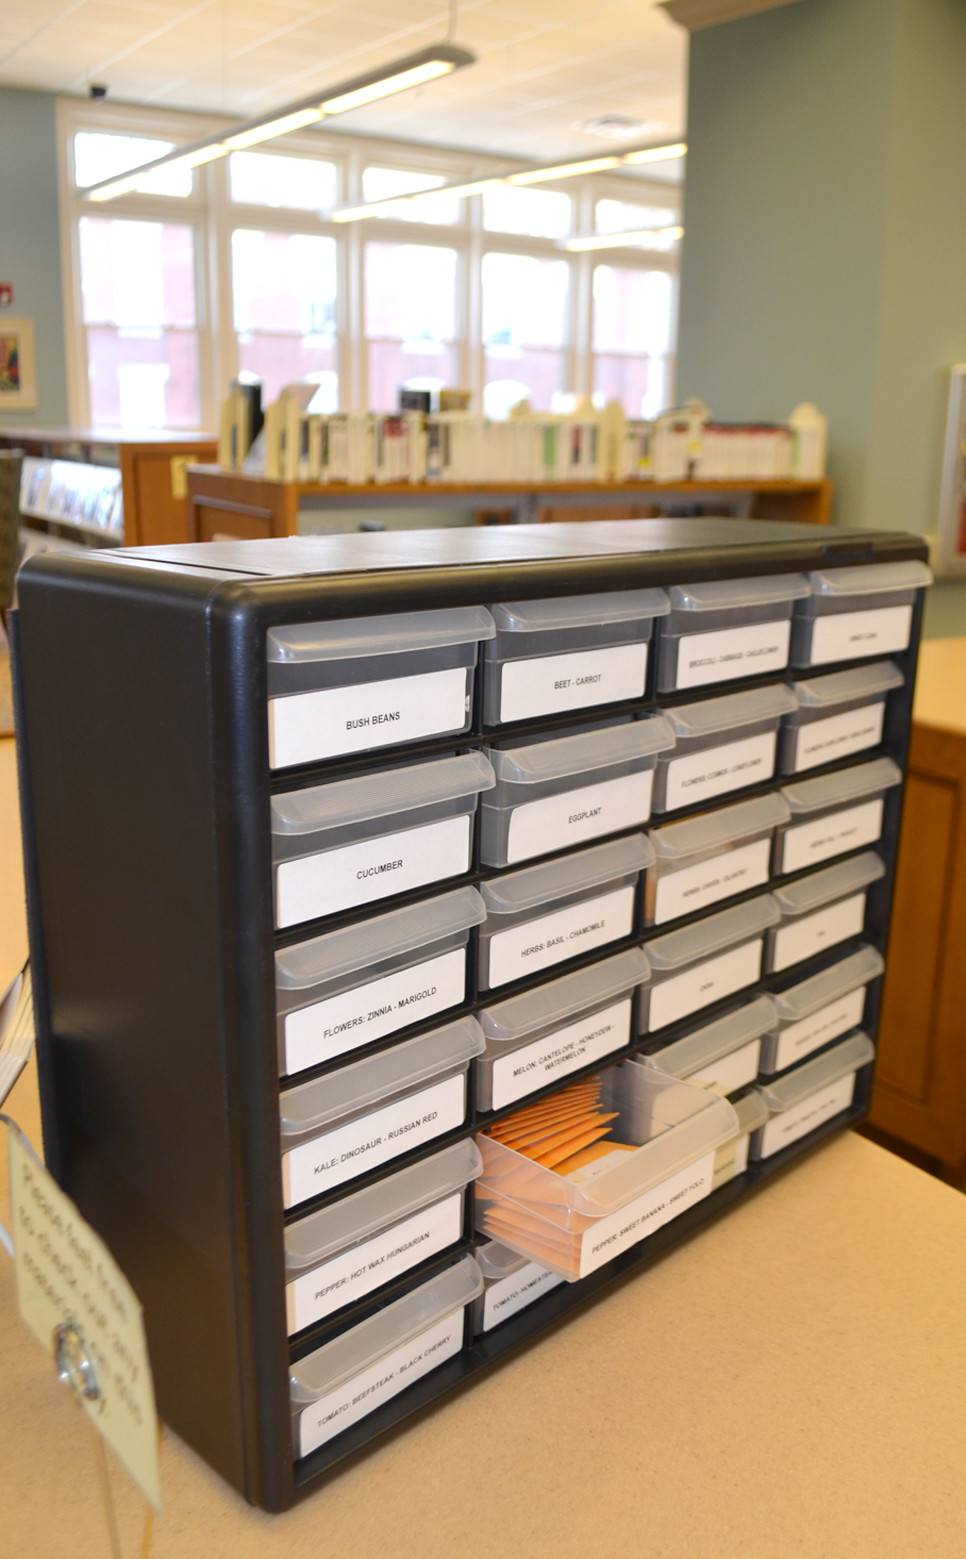 A SEED LIBRARY features many varieties of high-quality, free seeds at the Woodford County Library and Midway Branch Library. The seed giveaway encourages gardening, being outside and growing your own vegetables, said adult services librarian Emily Saderholm. (Photo by Bob Vlach)